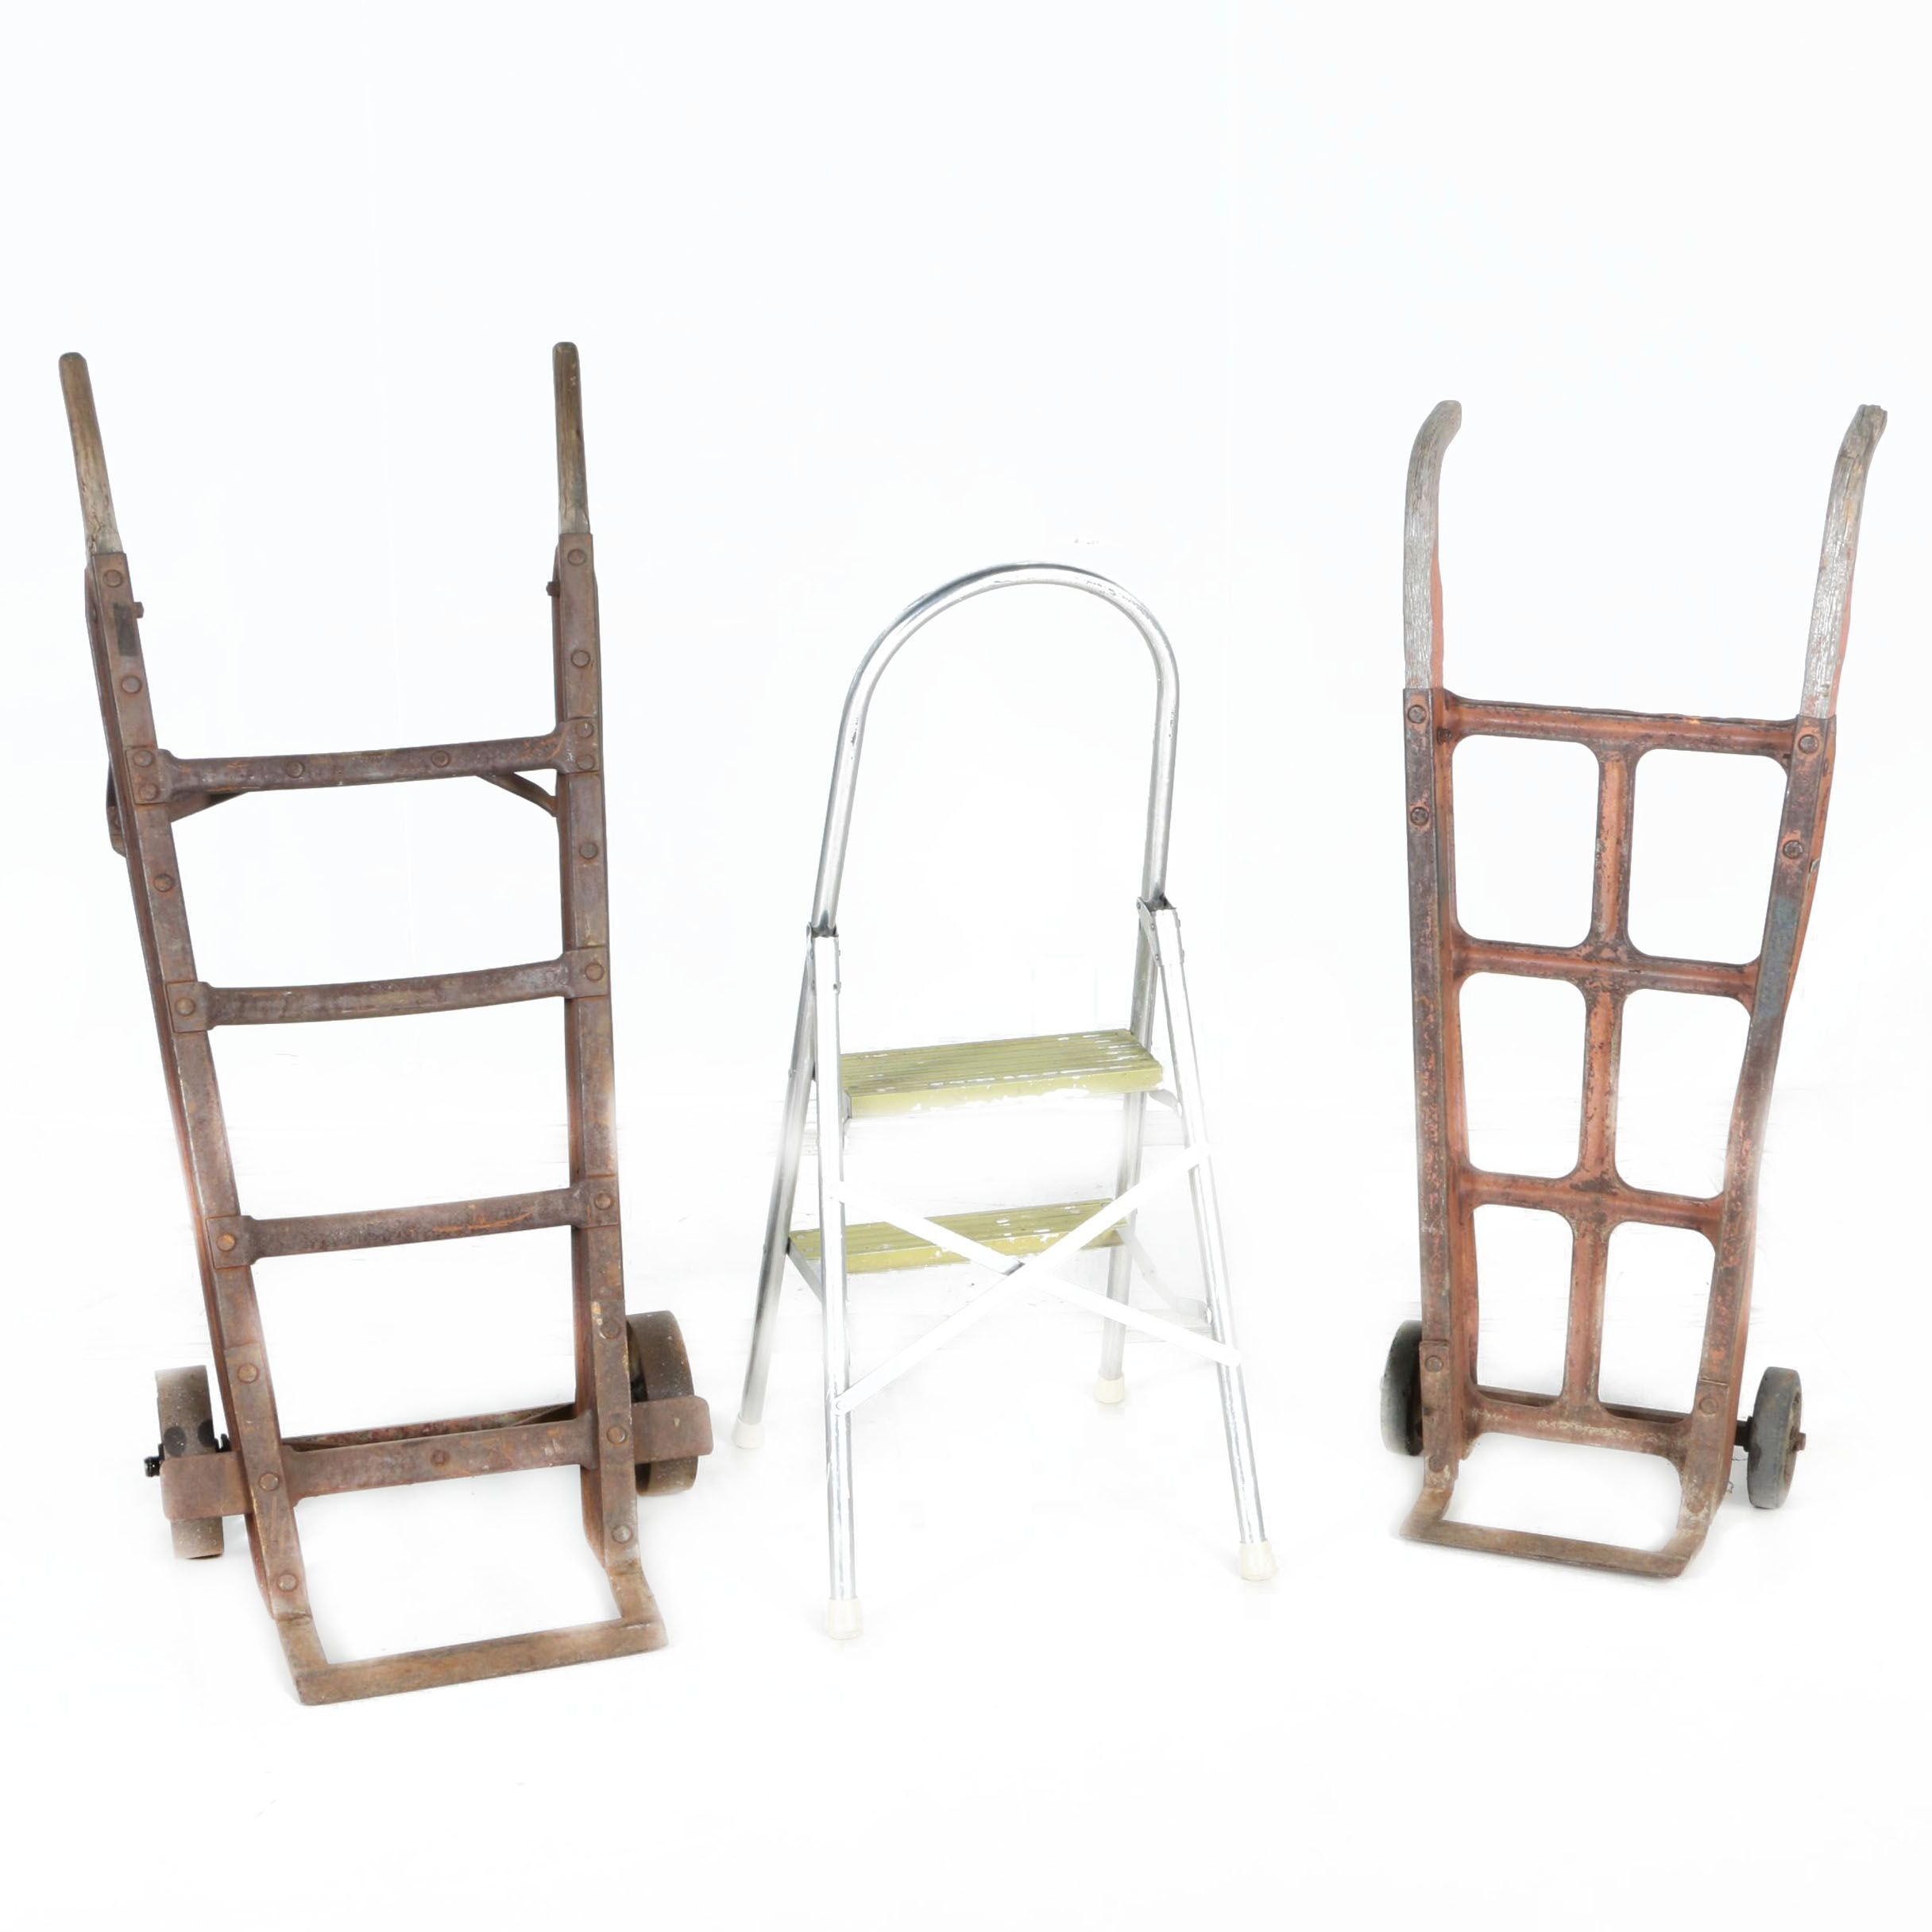 Two Vintage Wood and Metal Dollies and Step Stool